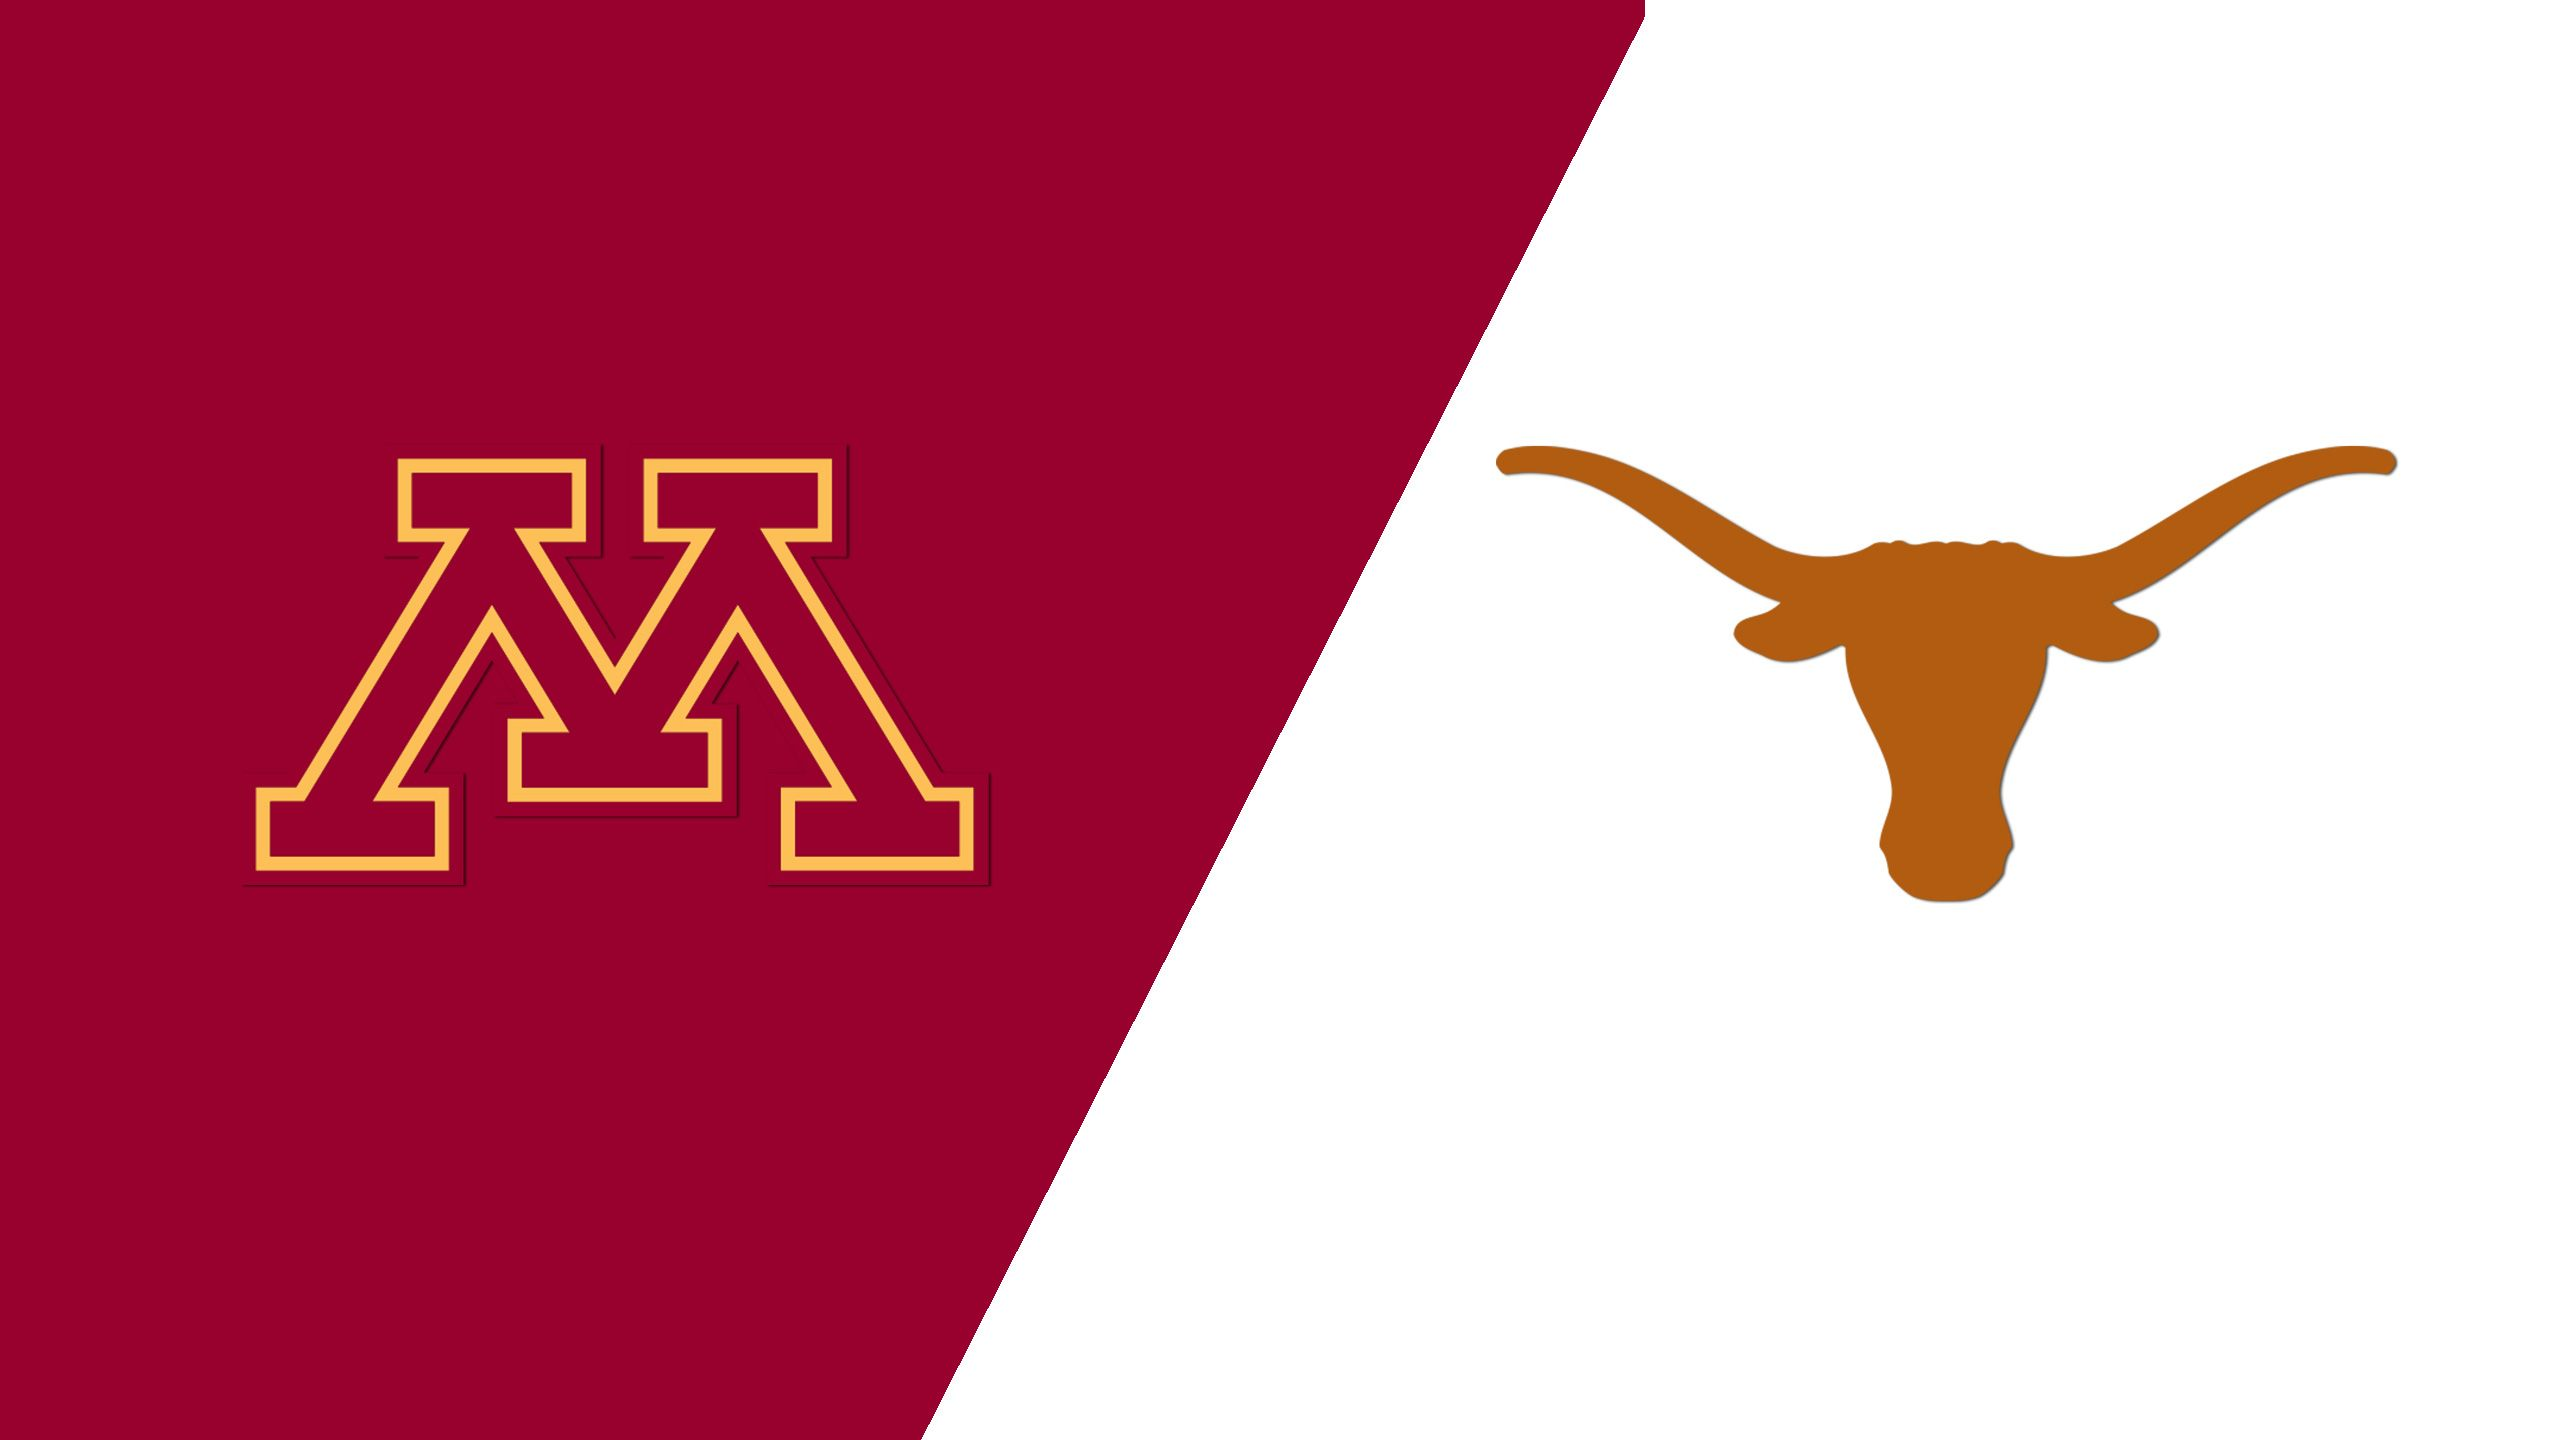 Minnesota vs. Texas (Site 4 / Game 5)